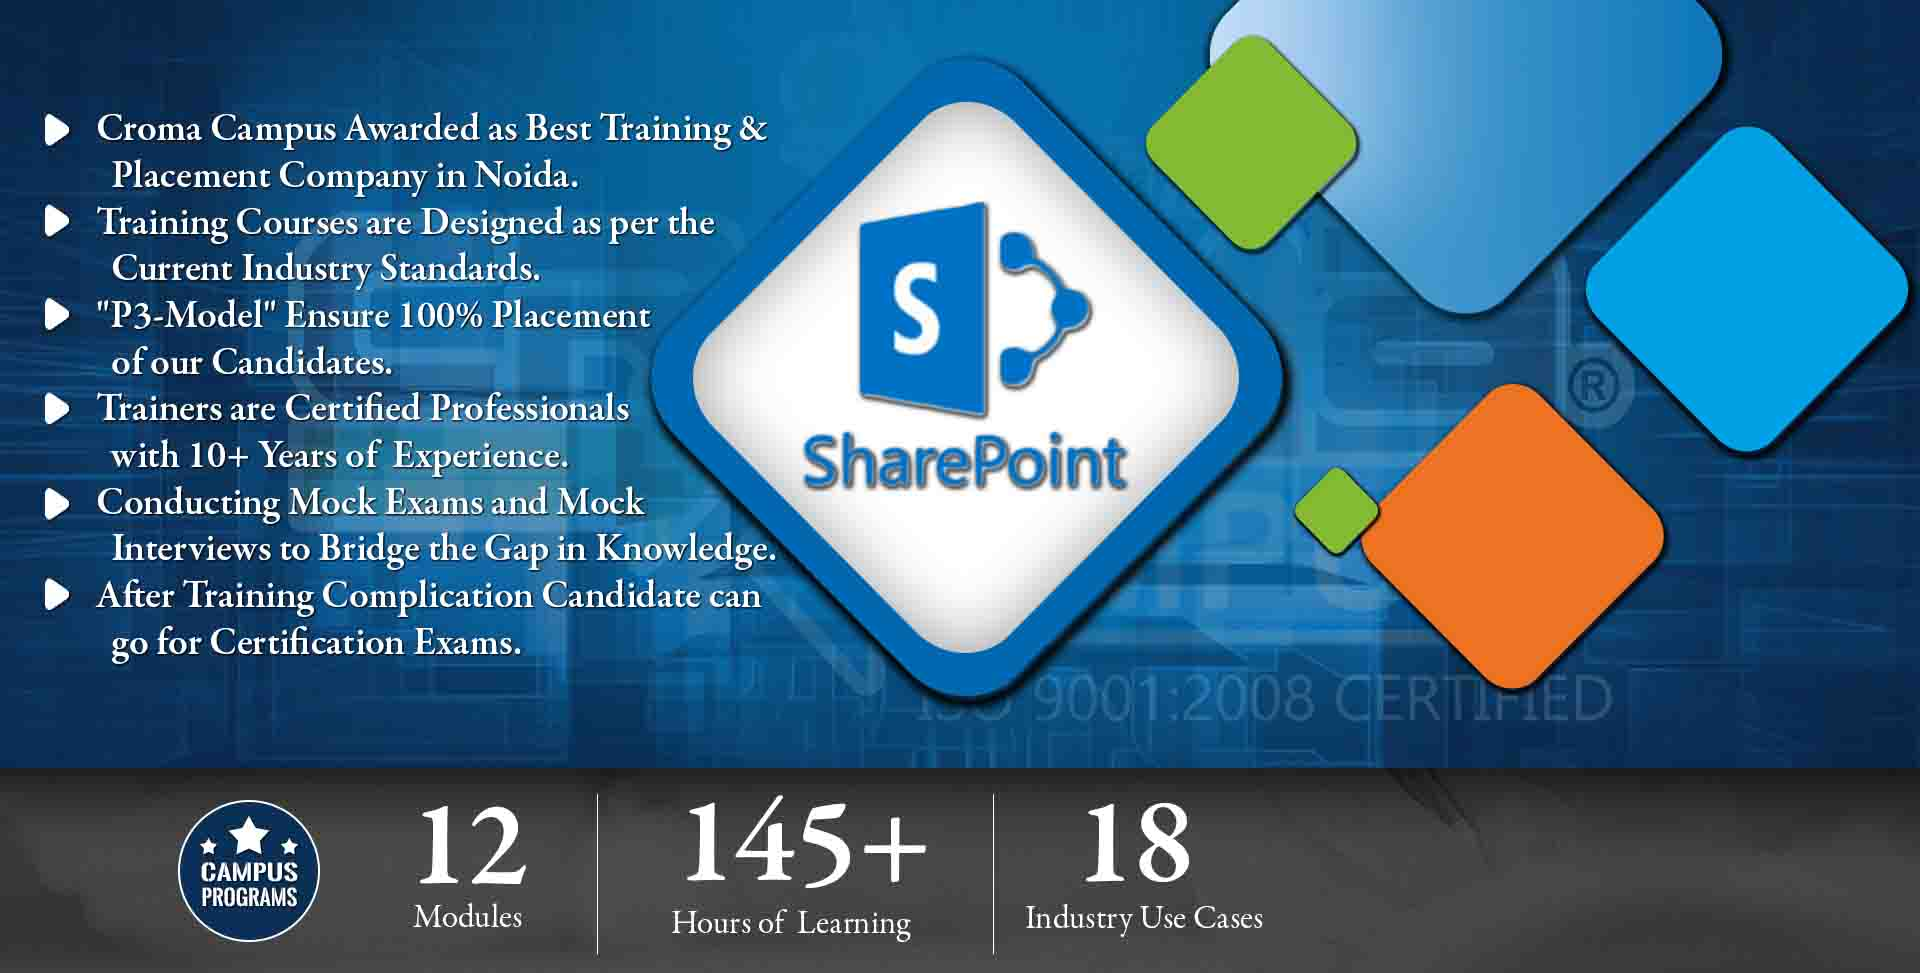 SharePoint Training in Delhi NCR- Croma Campus